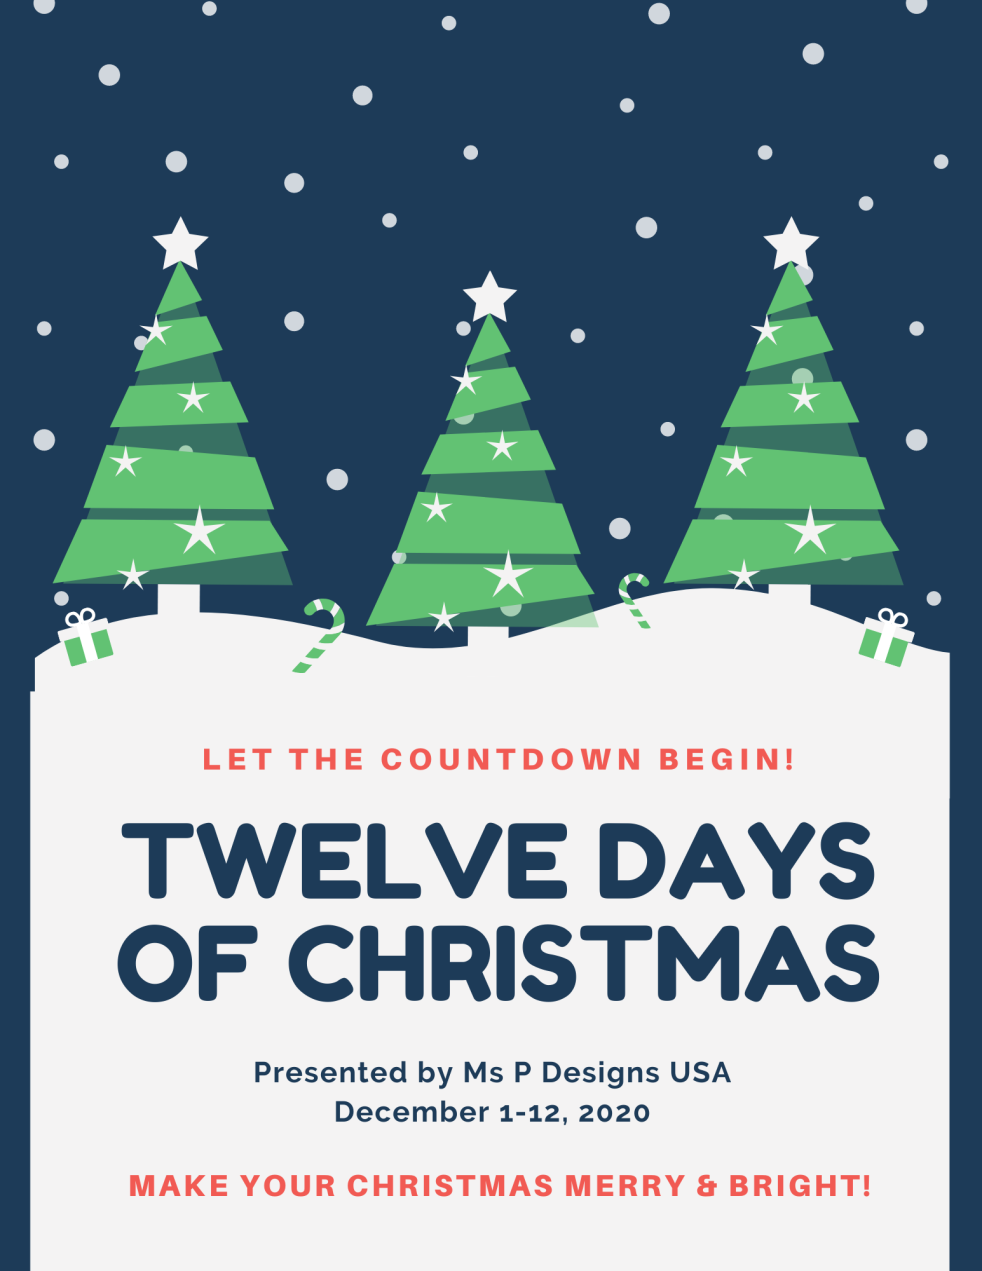 Twelve Days of Christmas 2020 by Ms P Designs USA